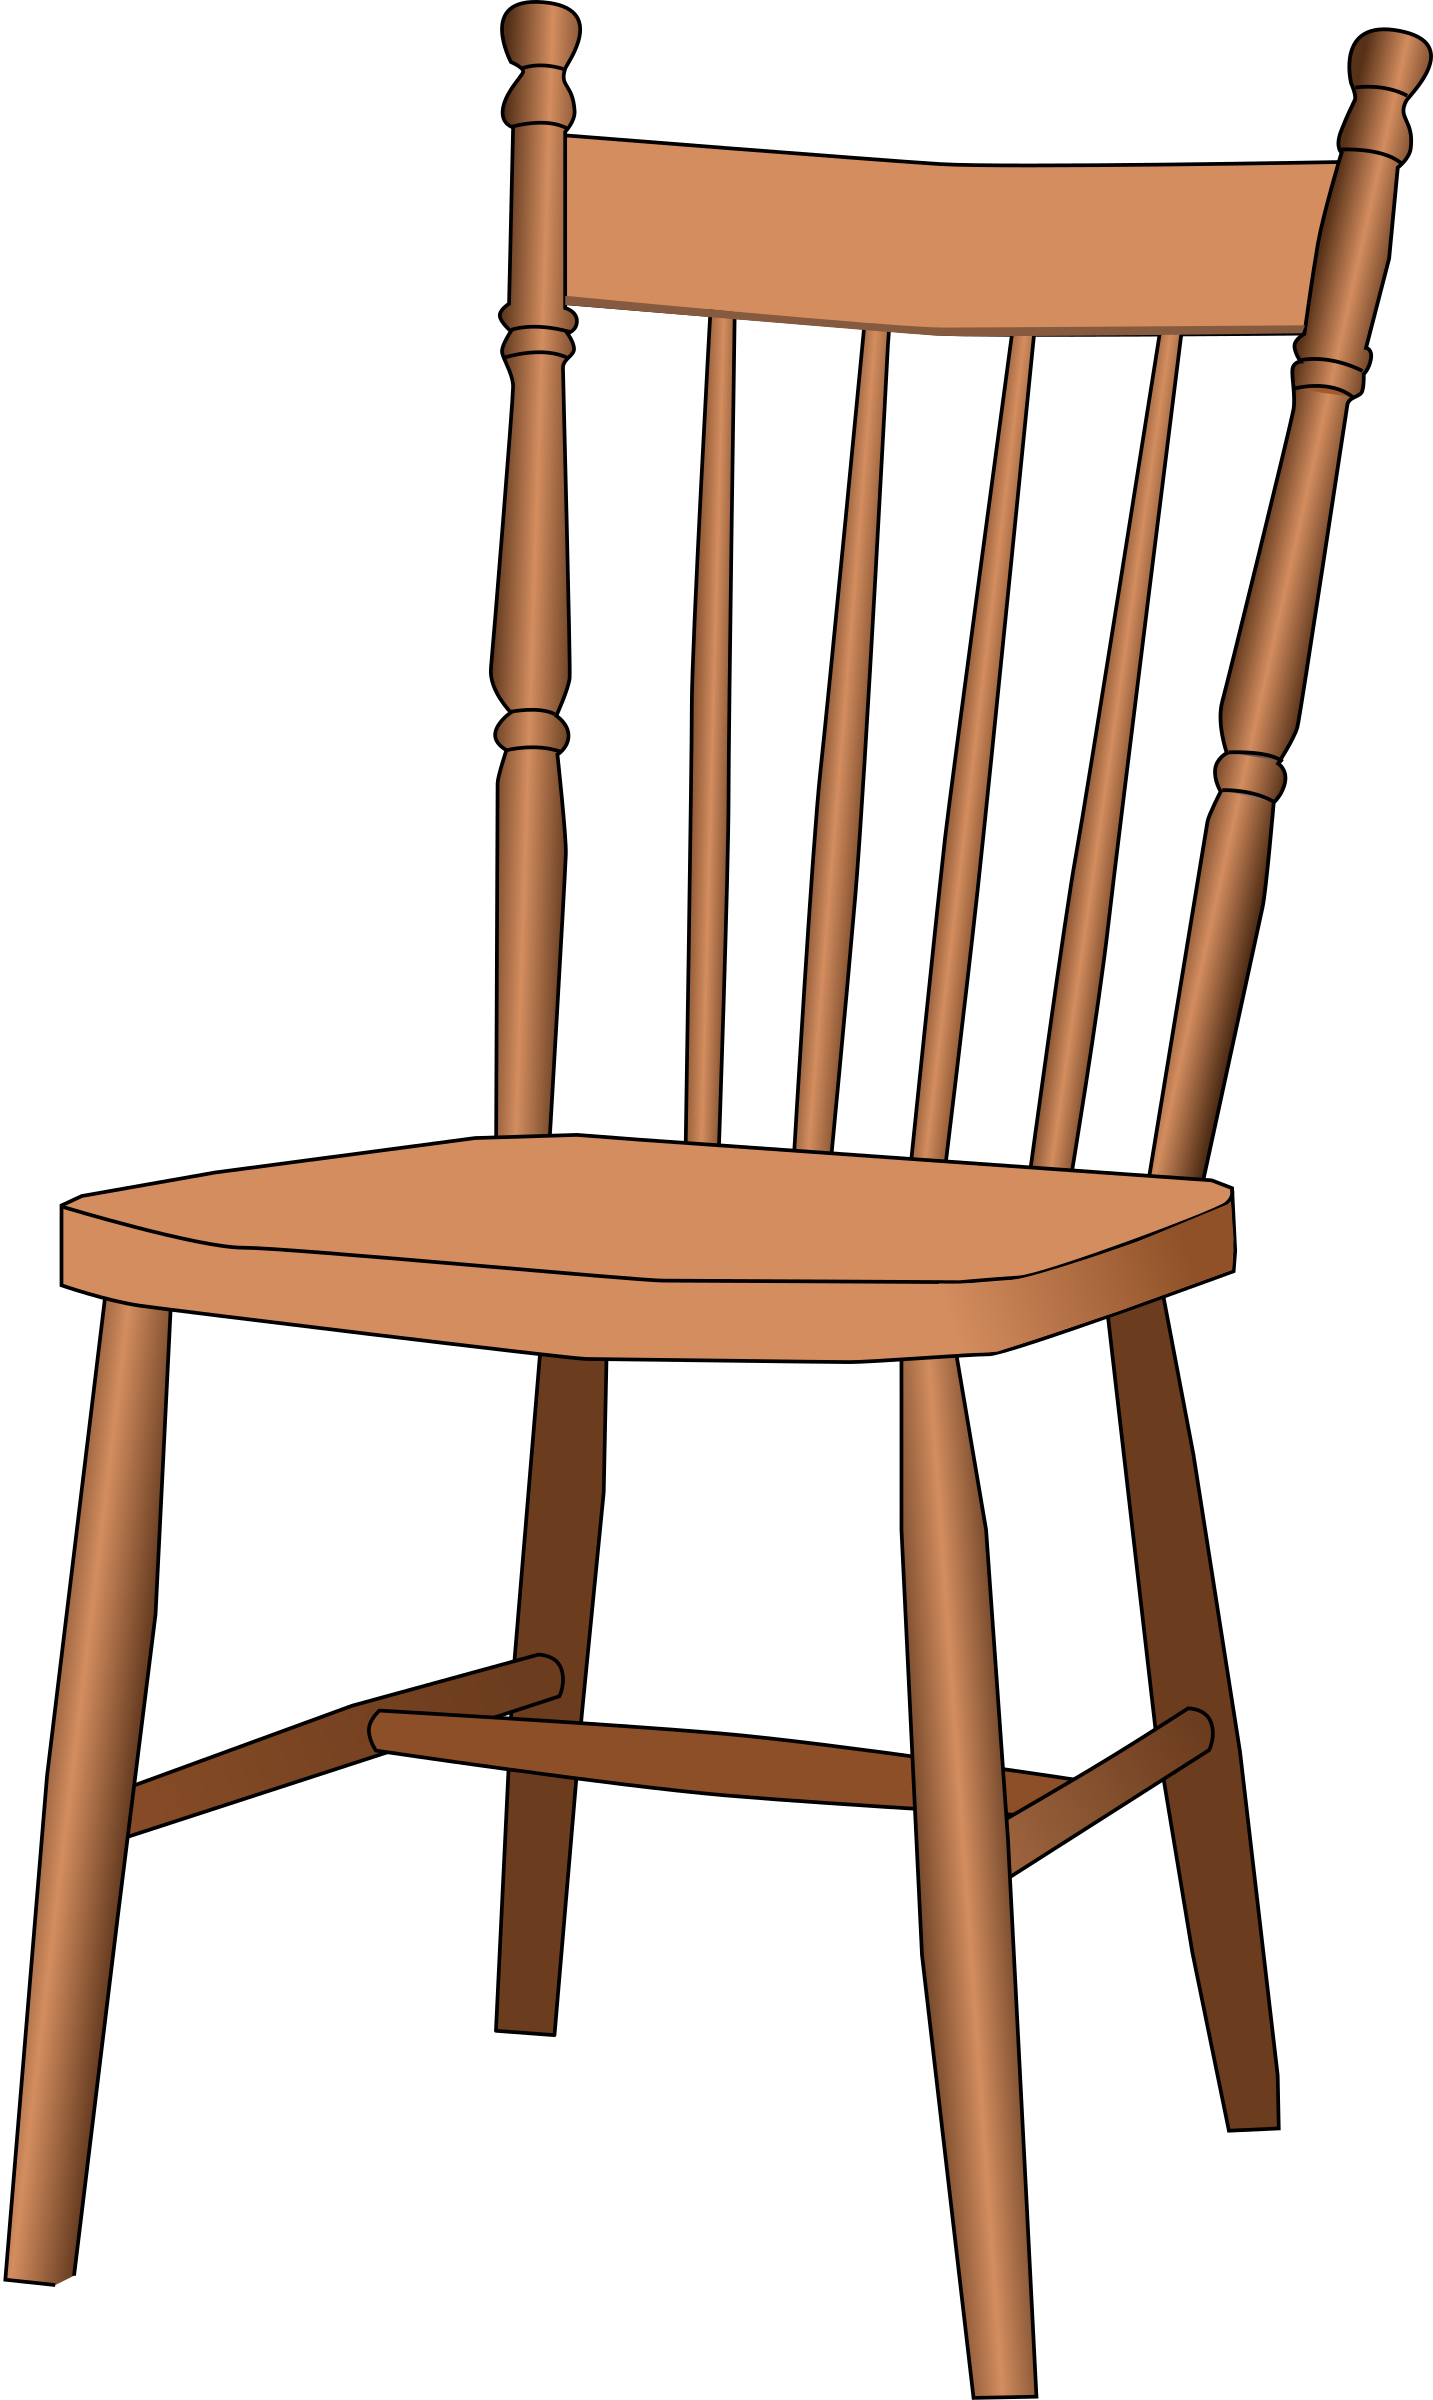 1433x2400 Chair Clip Art Many Interesting Cliparts